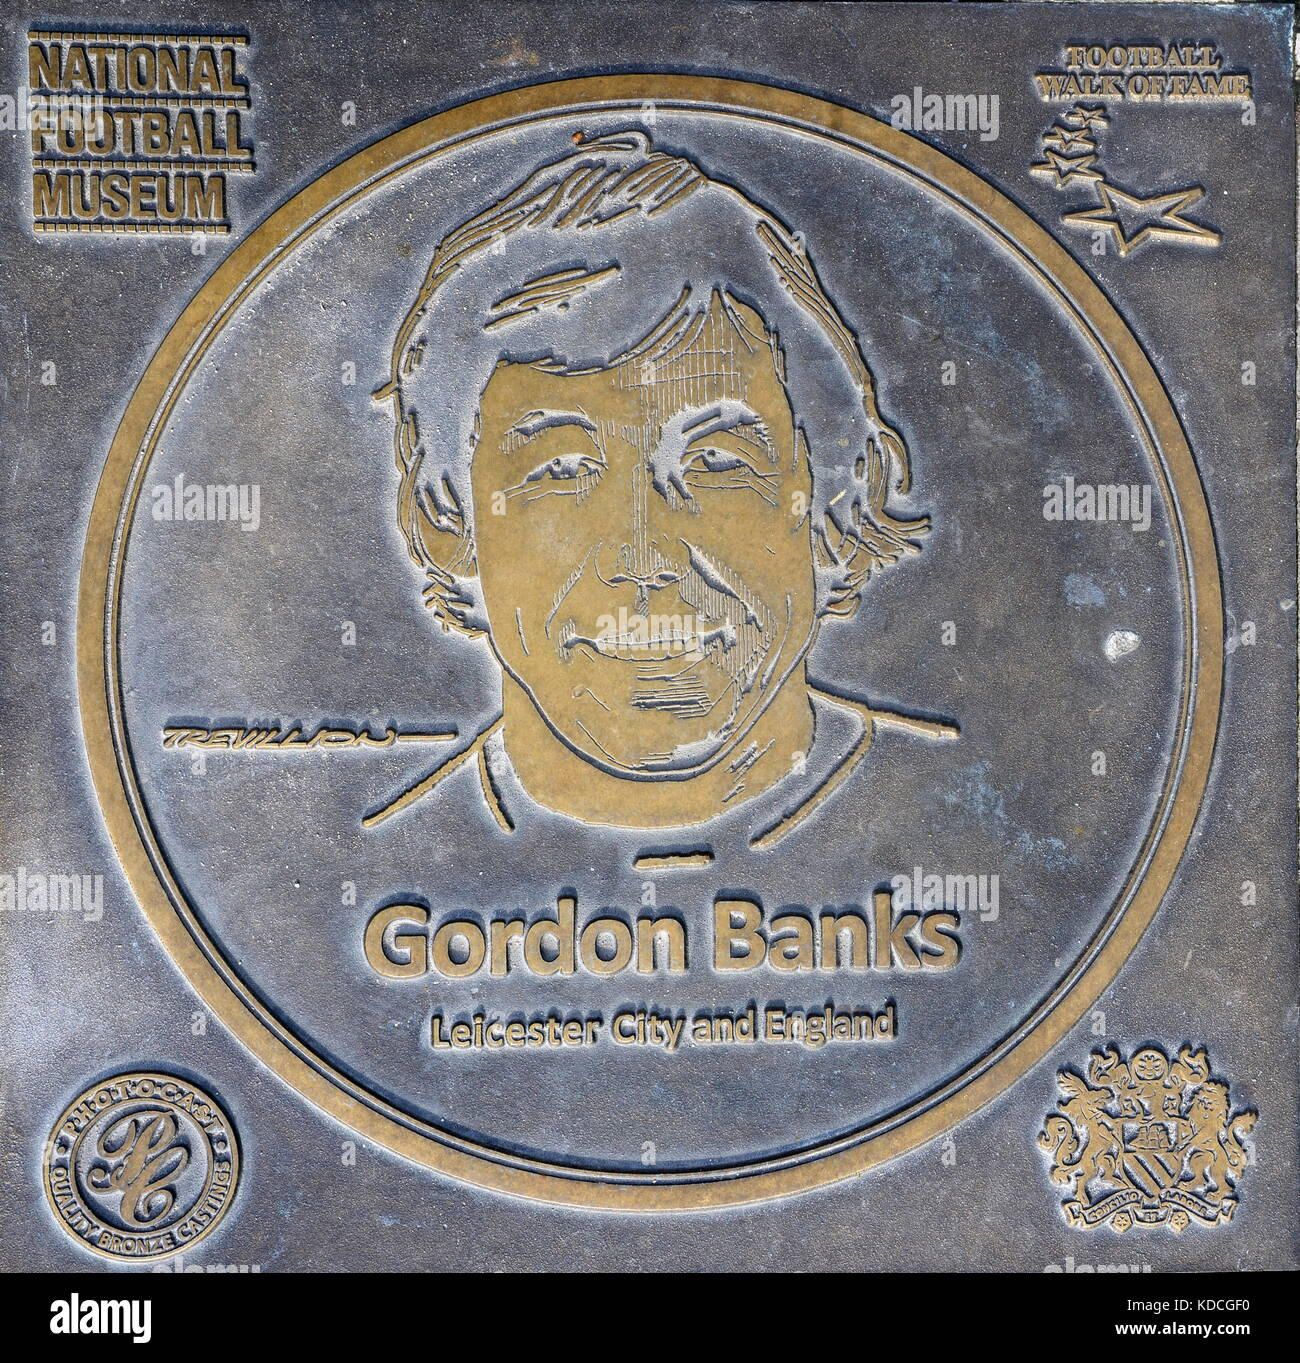 Gordon Banks plaque at the National Football Museum - Stock Image